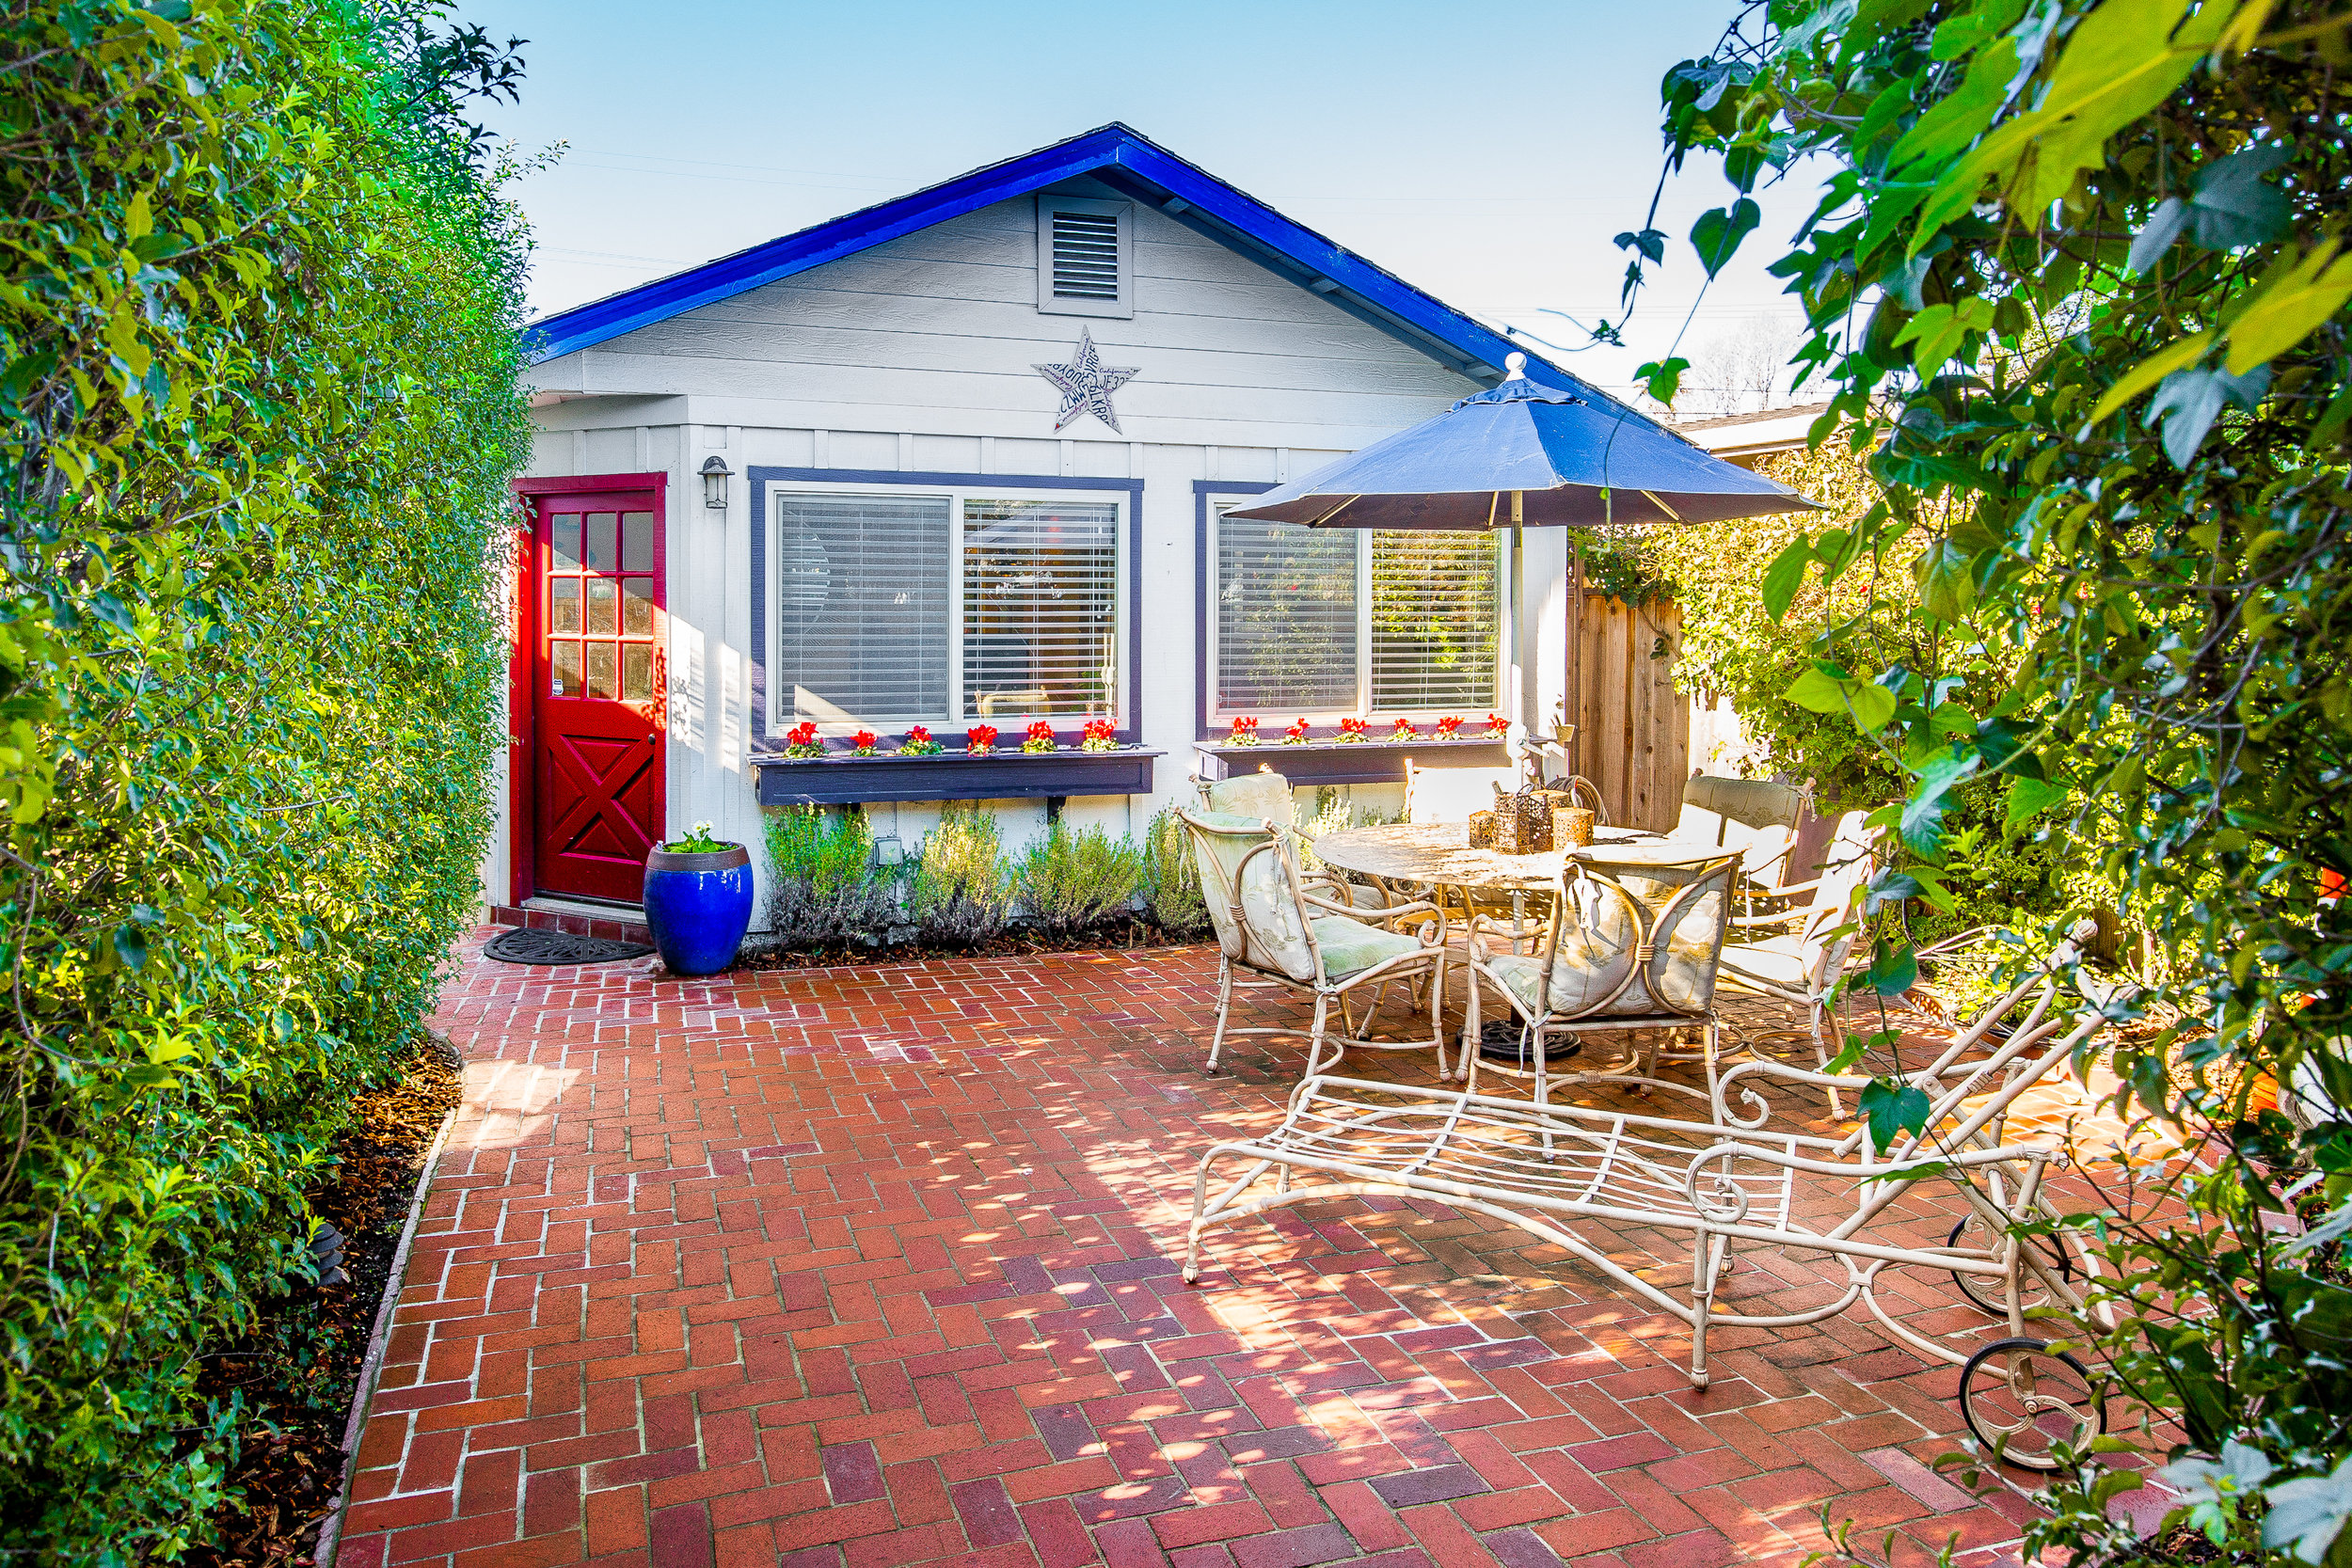 SOLD 573 Bethany Curve, Santa Cruz • $689,000  2 Bedroom, 1 Bathroom • 635 Sq. Ft.